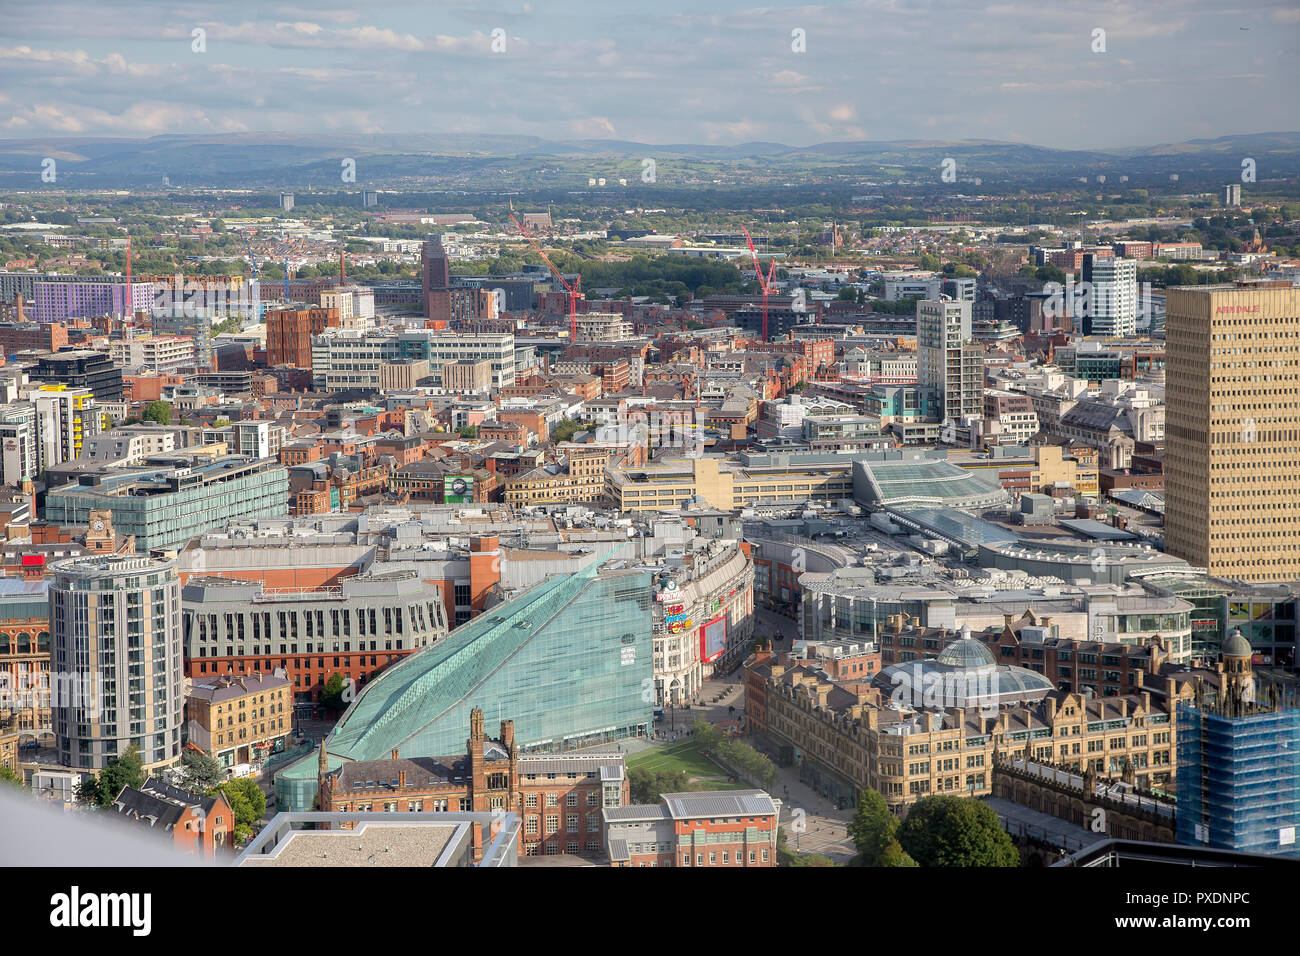 High view of Manchester City Centre - Stock Image